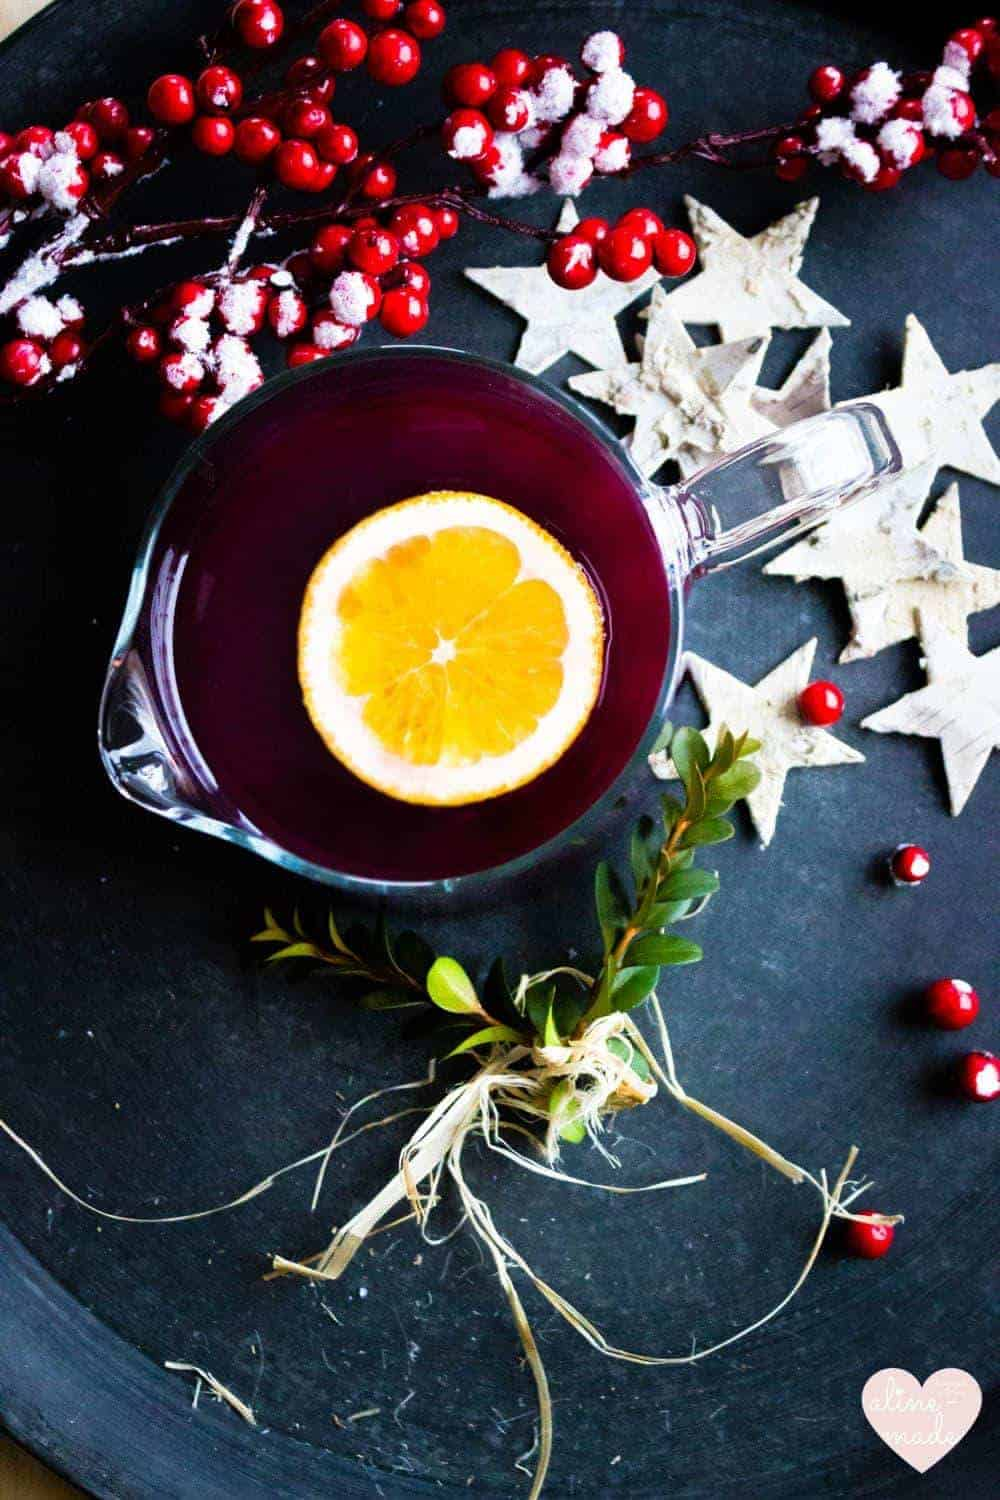 Ginger Mulled Wine Recipe topped with an orange slice and decorated with stars